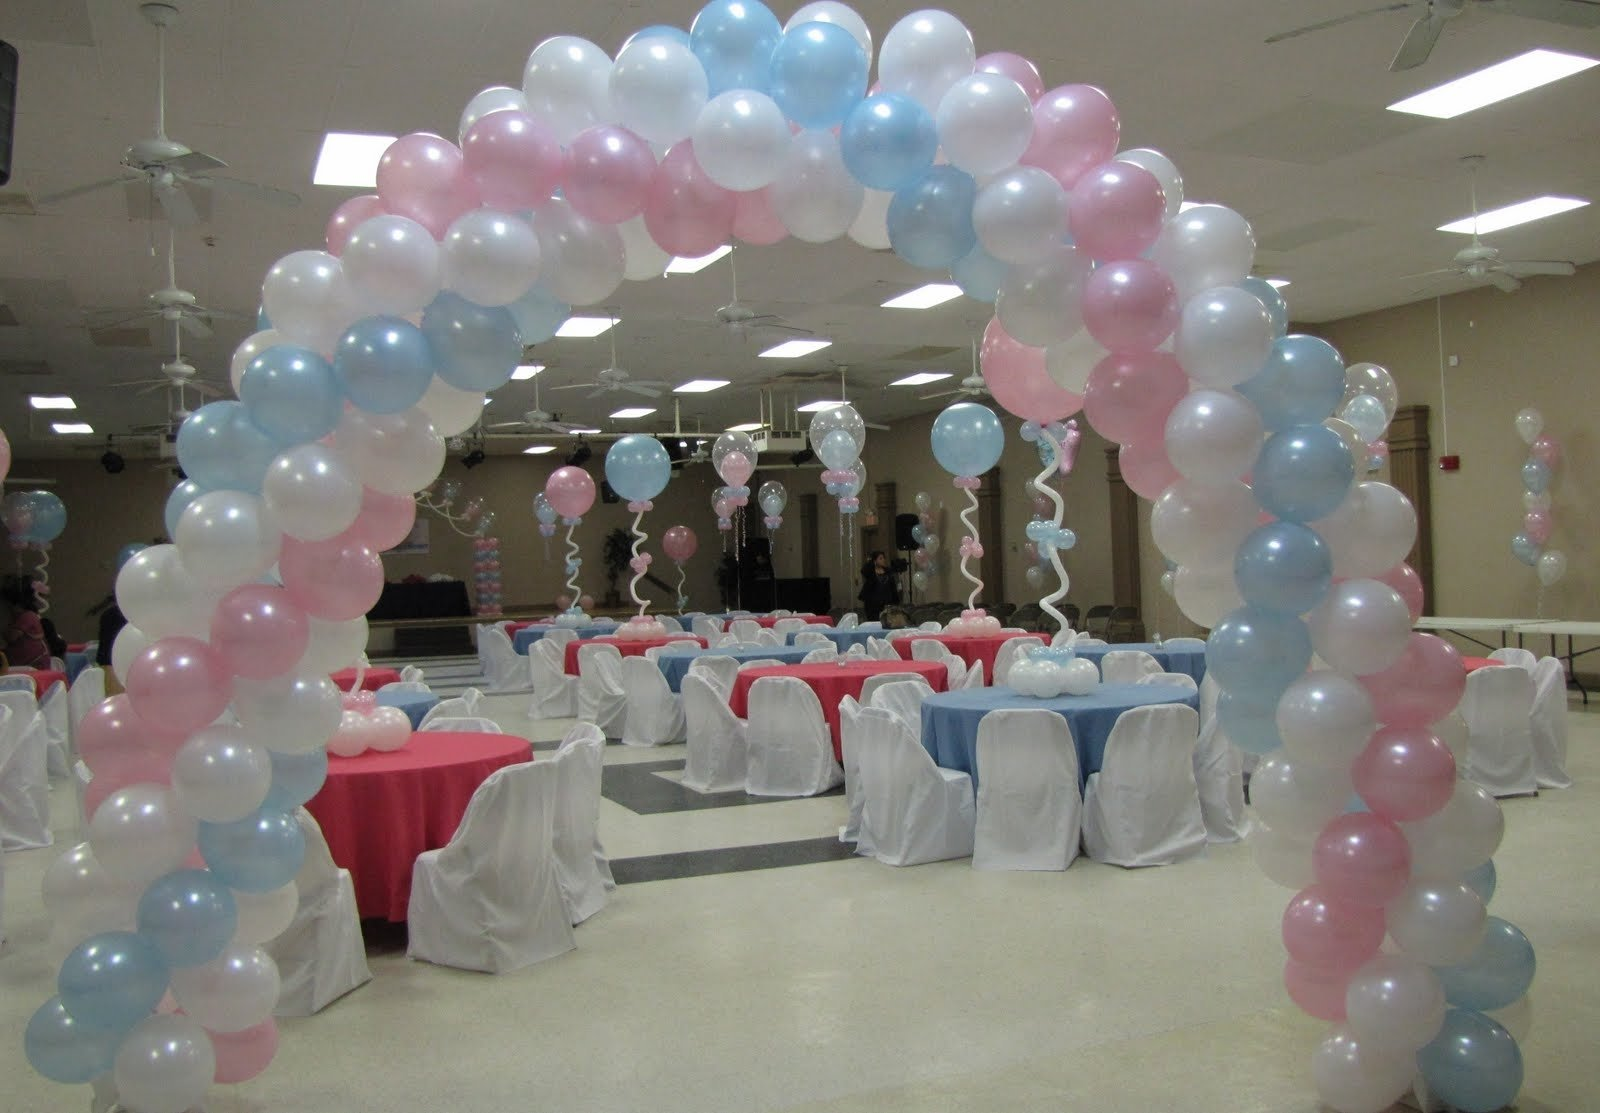 10 Awesome Baby Shower Balloon Decorations Ideas baby shower balloon decor party favors ideas tierra este 69395 2020